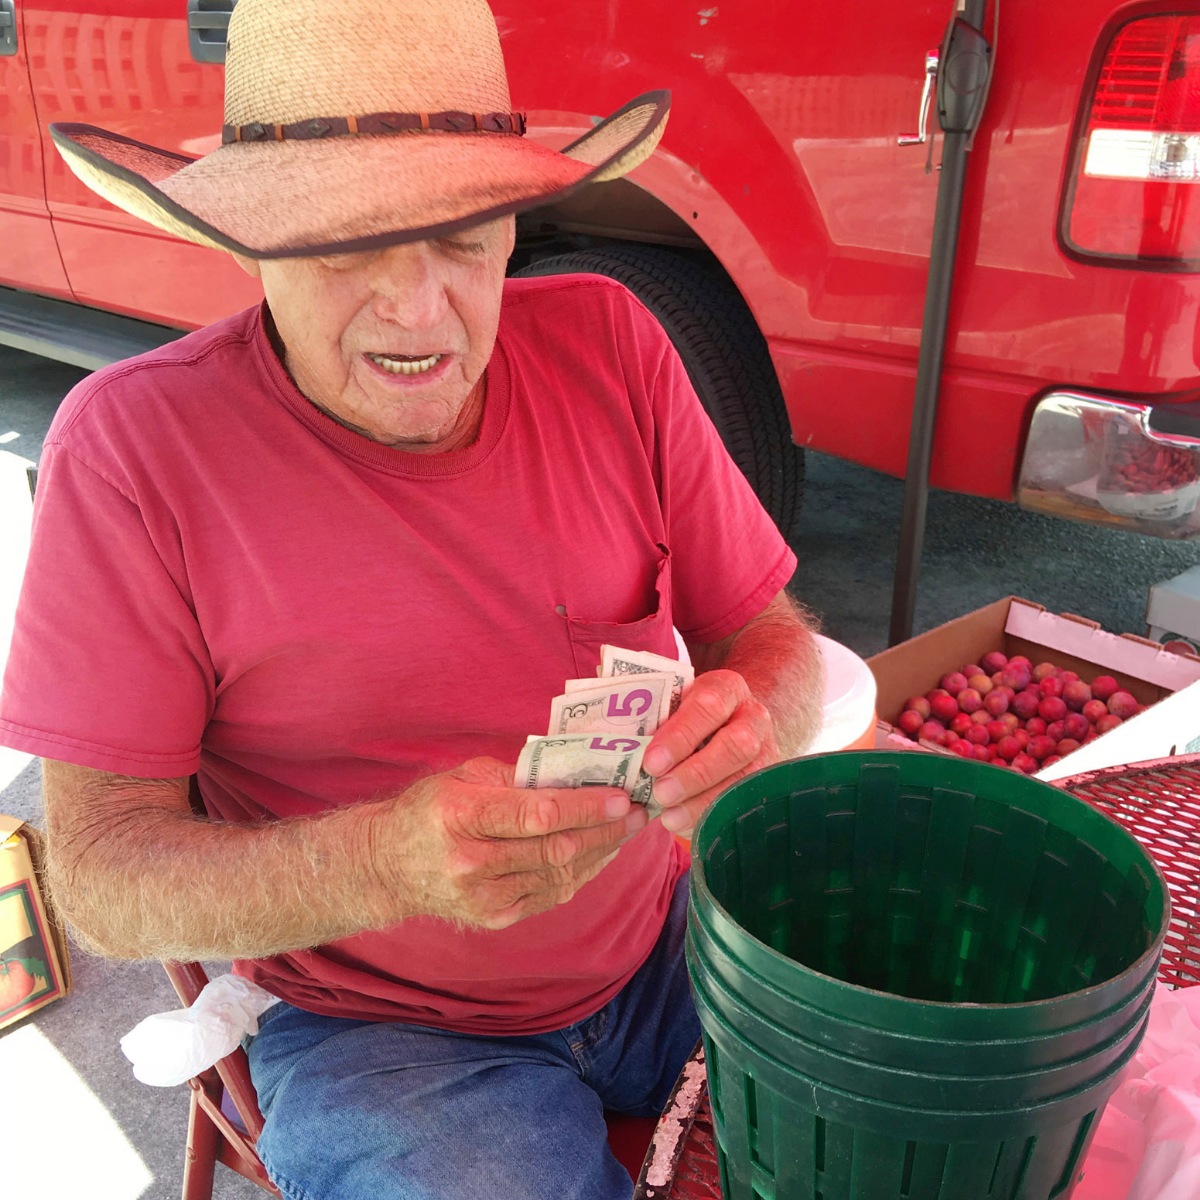 Floyd Champion, 77, counts money at his roadside produce stand in Alabaster, Ala., on July 3, 2018. A big fan of President Donald Trump, Champion said he plans to spend July 4 selling watermelons, tomatoes and other produce from the back of his pickup truck. Champion said he is feeling more patriotic than ever because of the success Trump has had in office. (AP Photo/Jay Reeves).